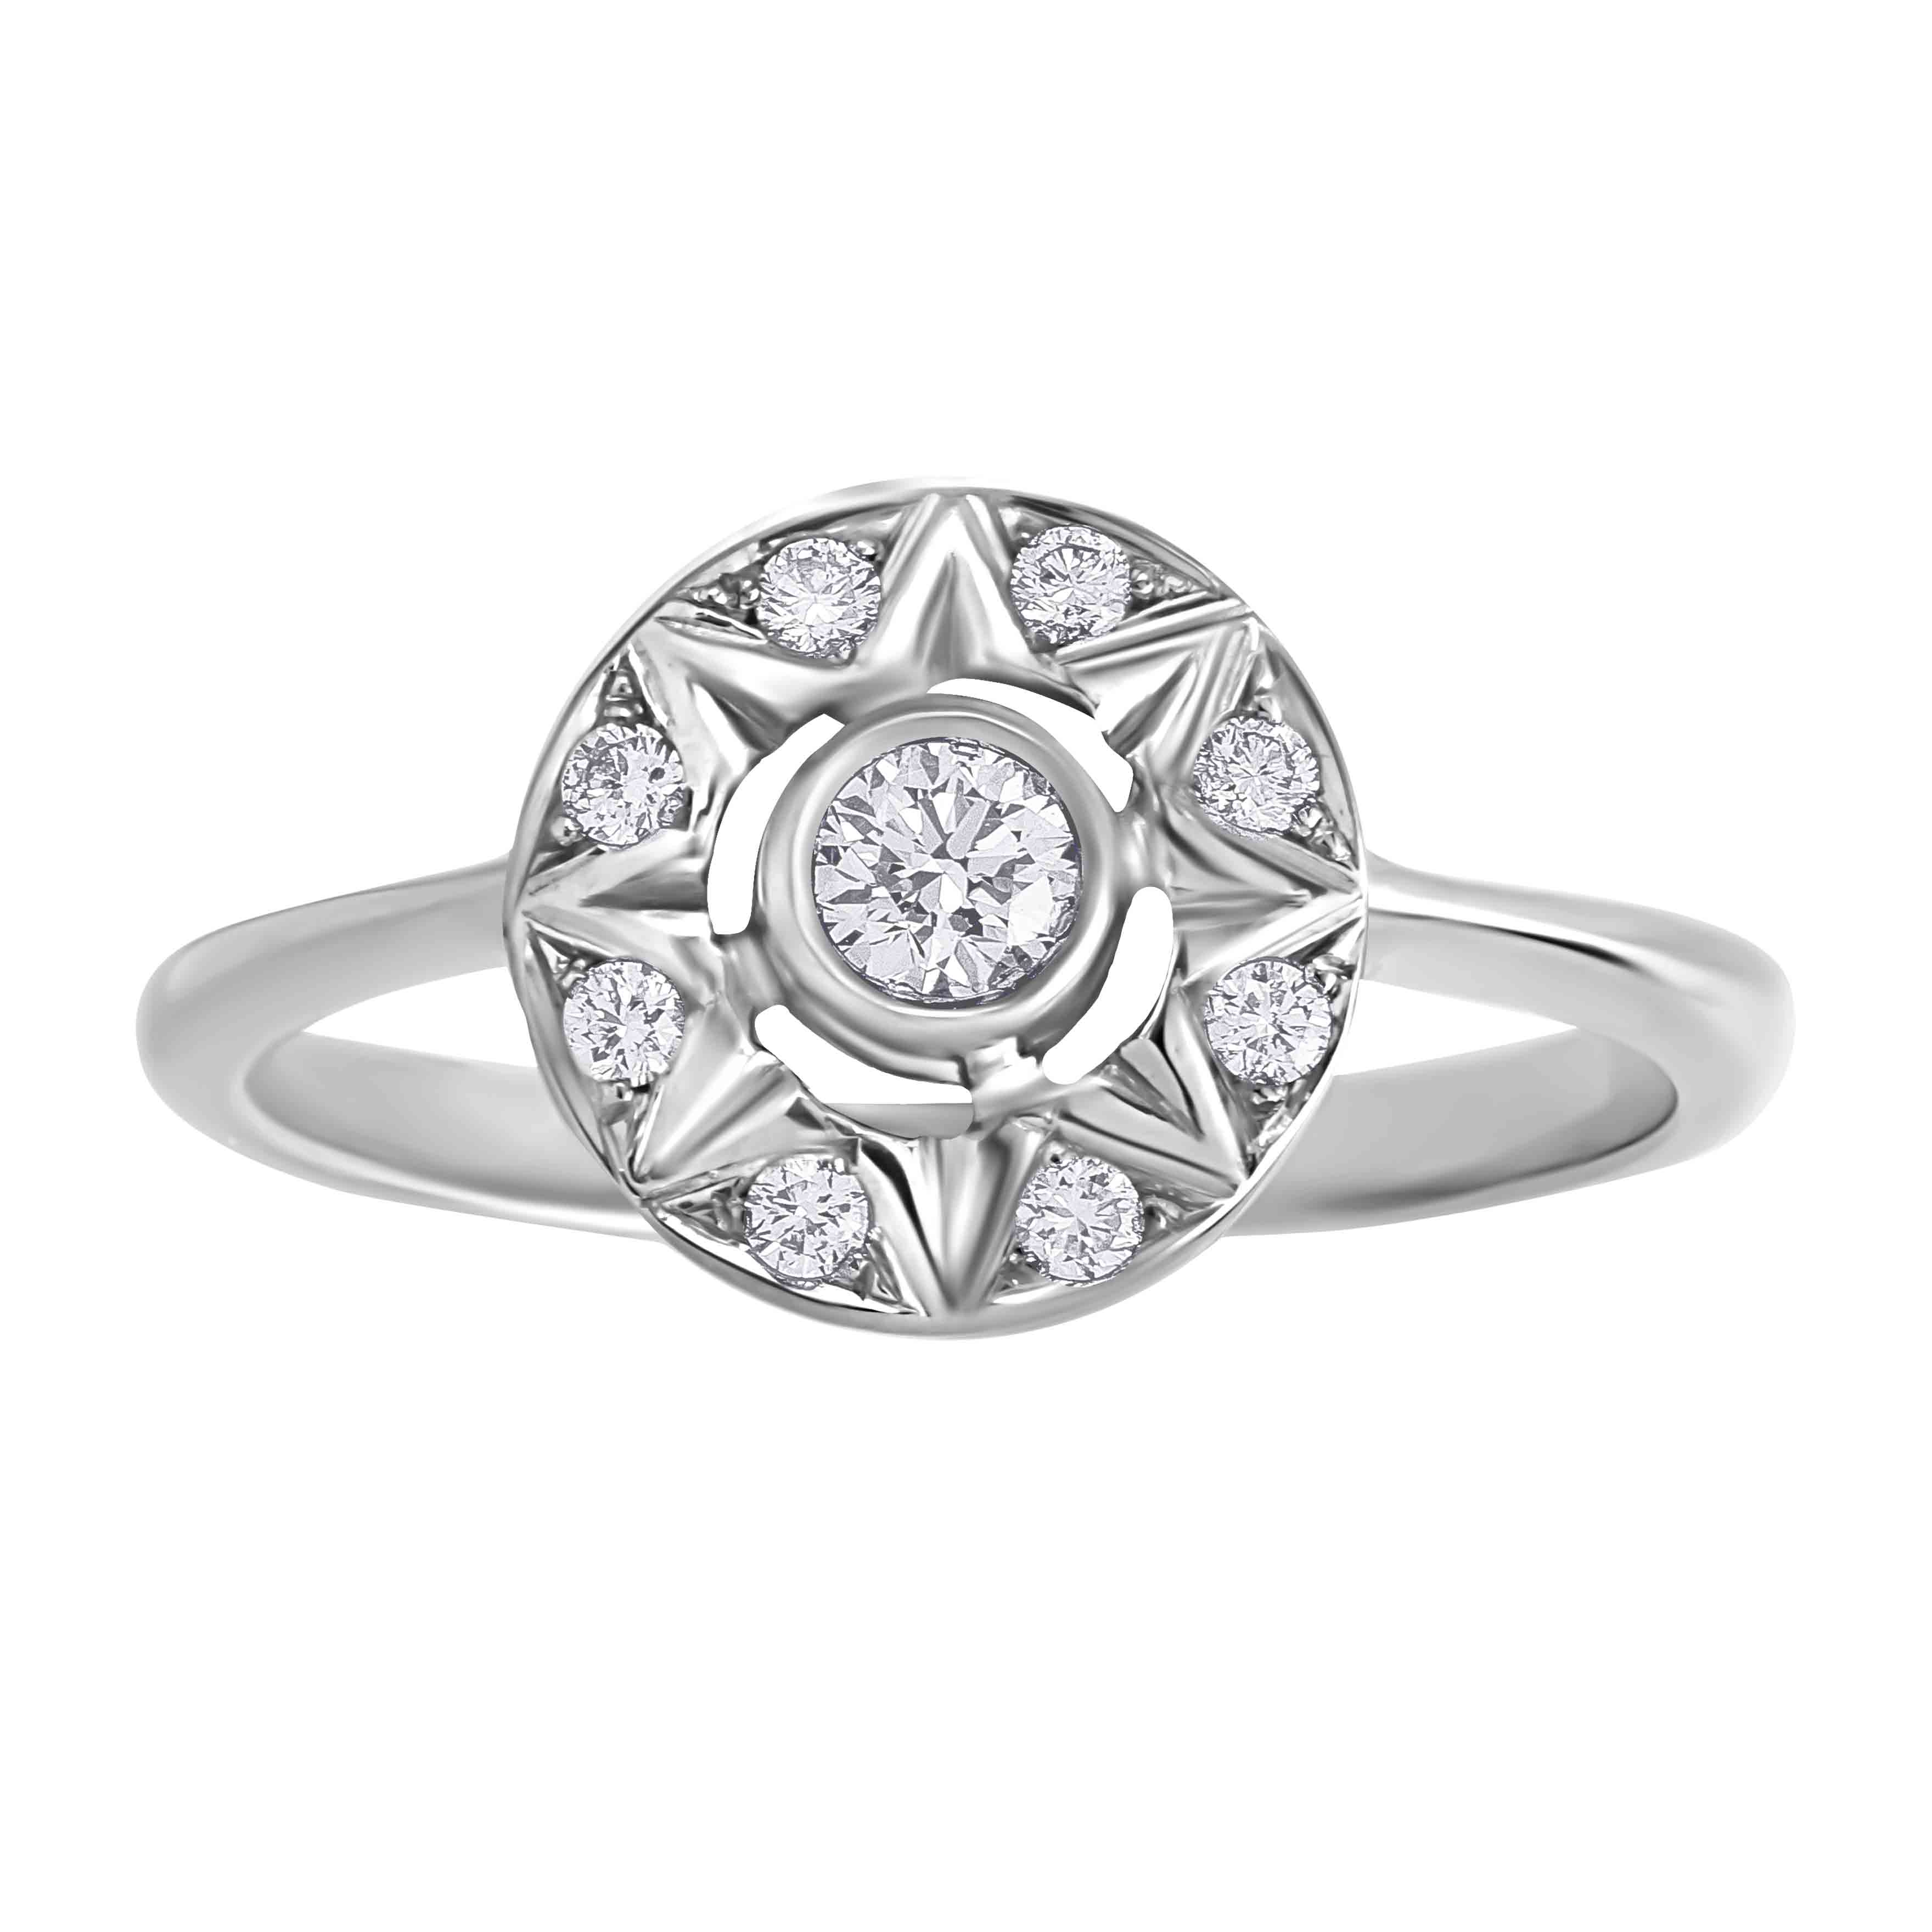 'Say YES to Bridal' Diamond Engagement Ring in 14kt White Gold. View 2